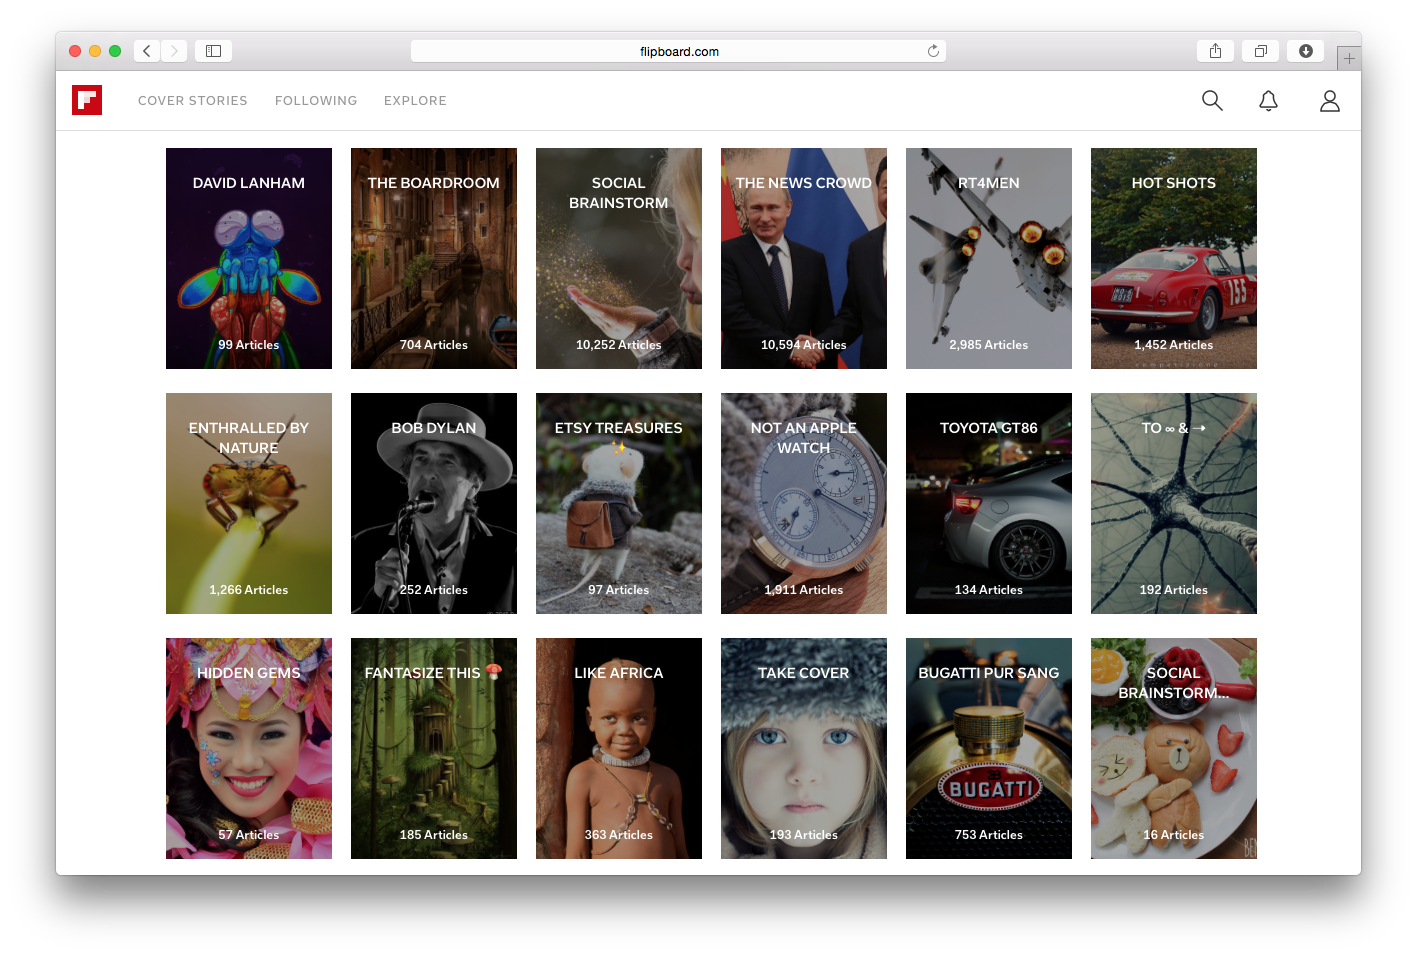 How I Make, Share and Promote my Flipboard Magazines